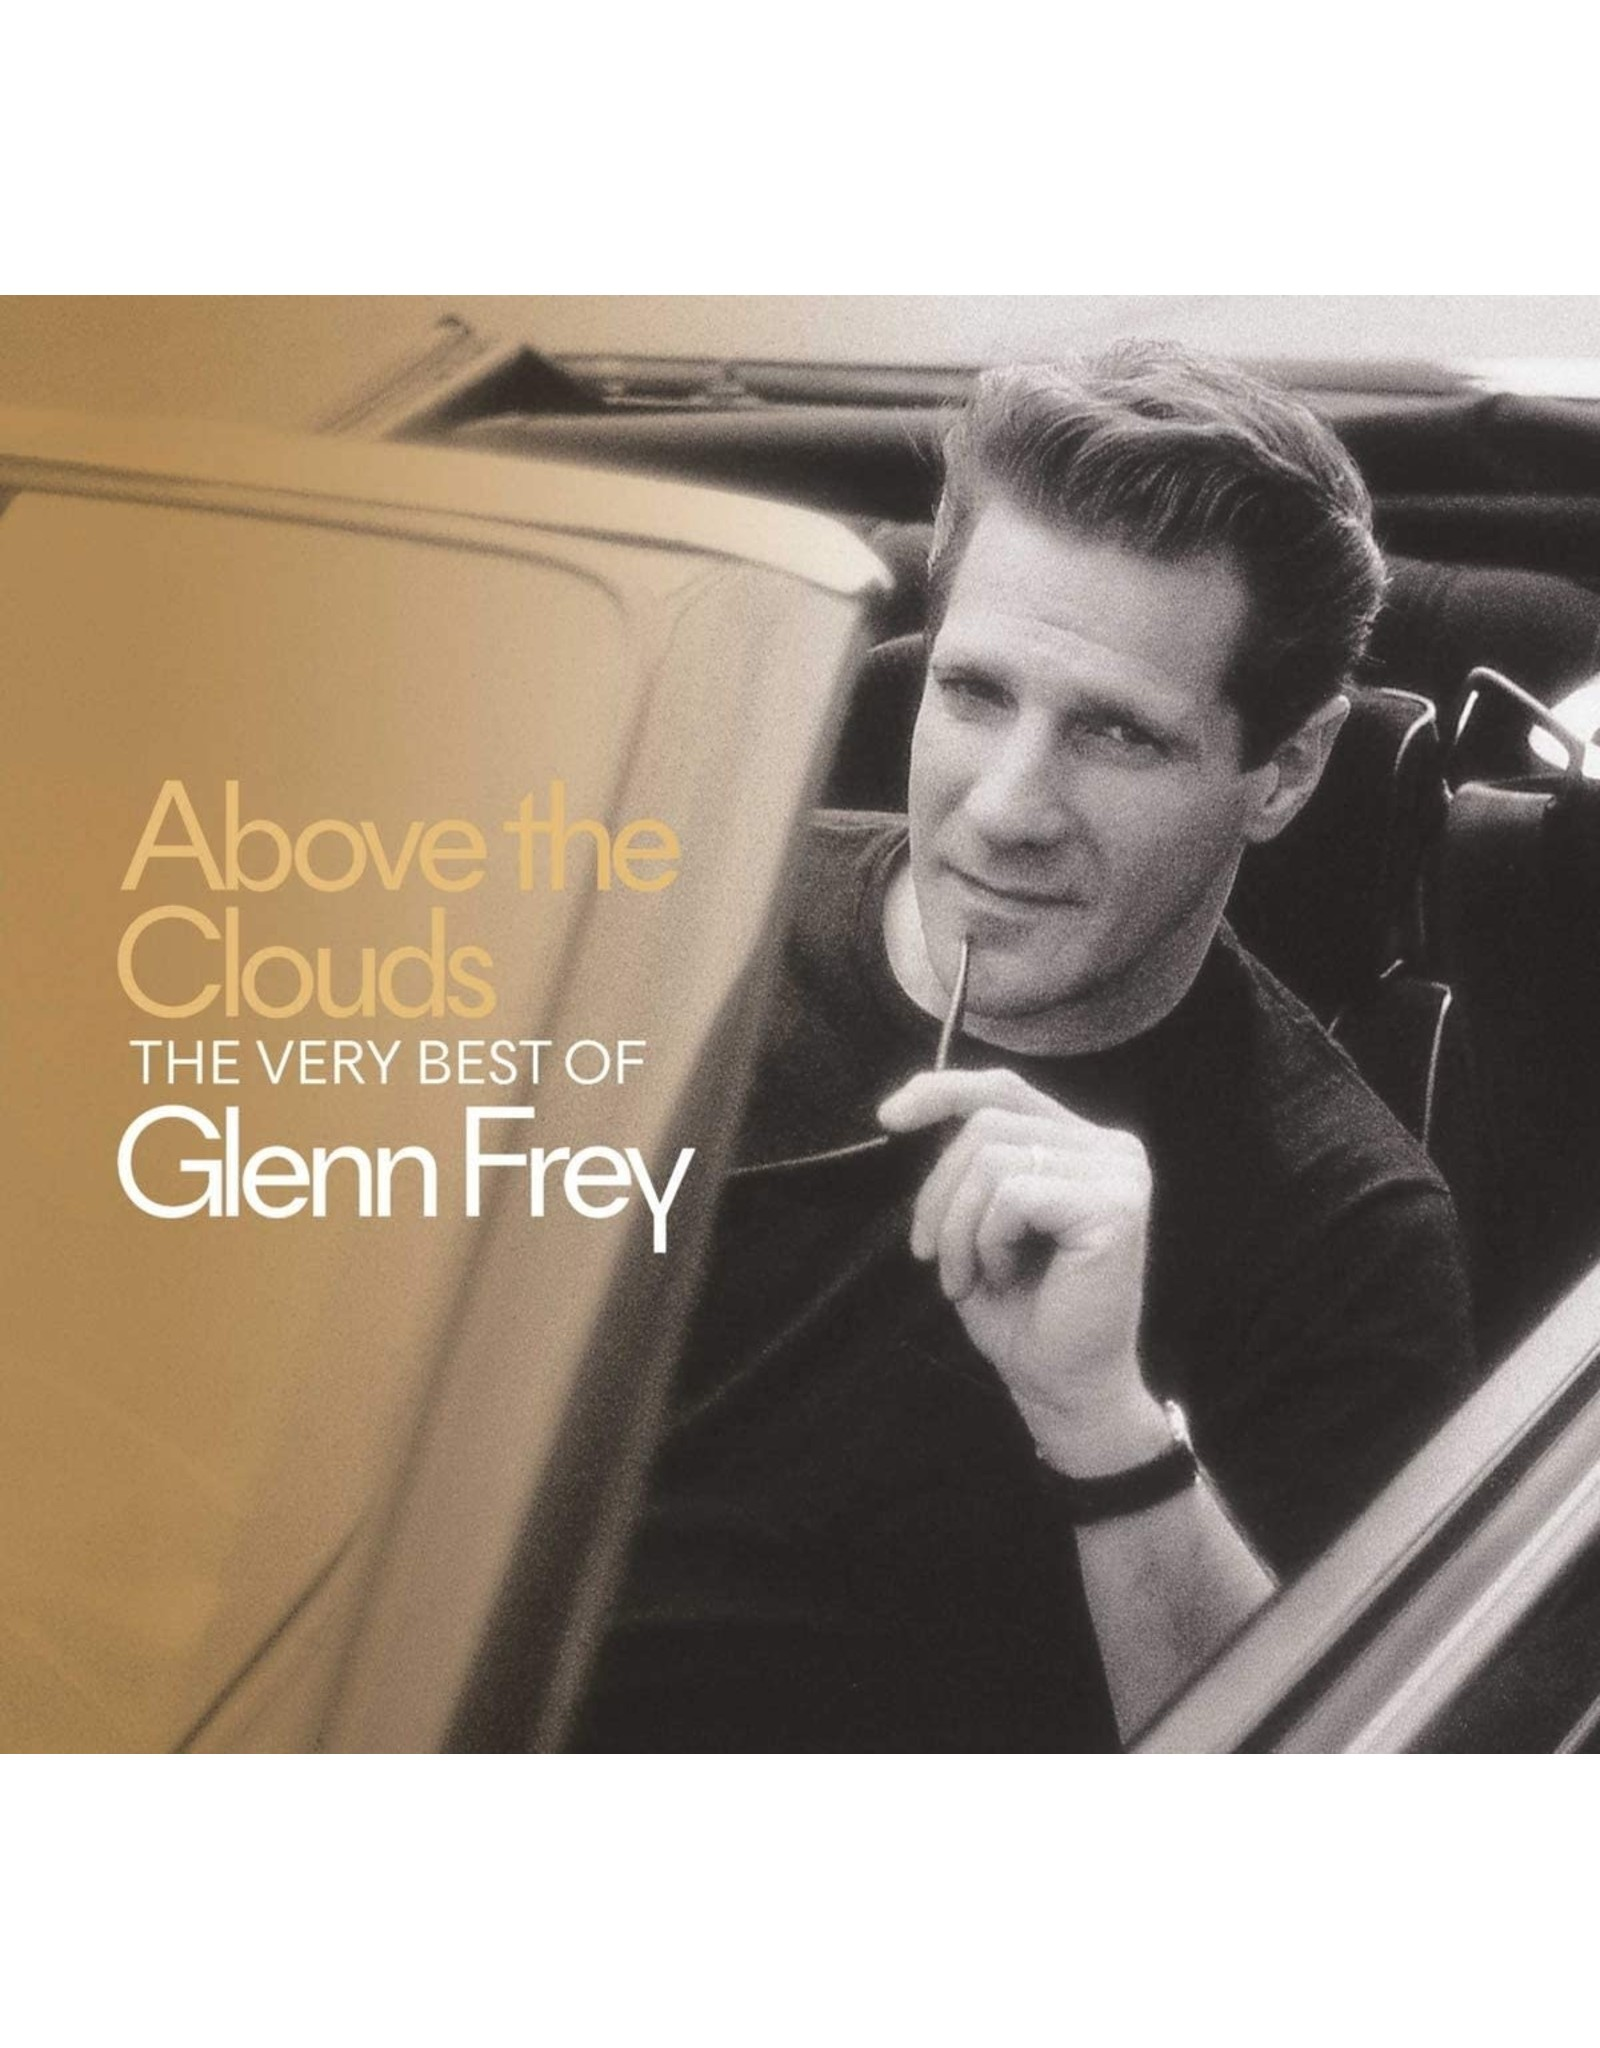 Fry, Glenn - Above the Clouds: The Best Of CD